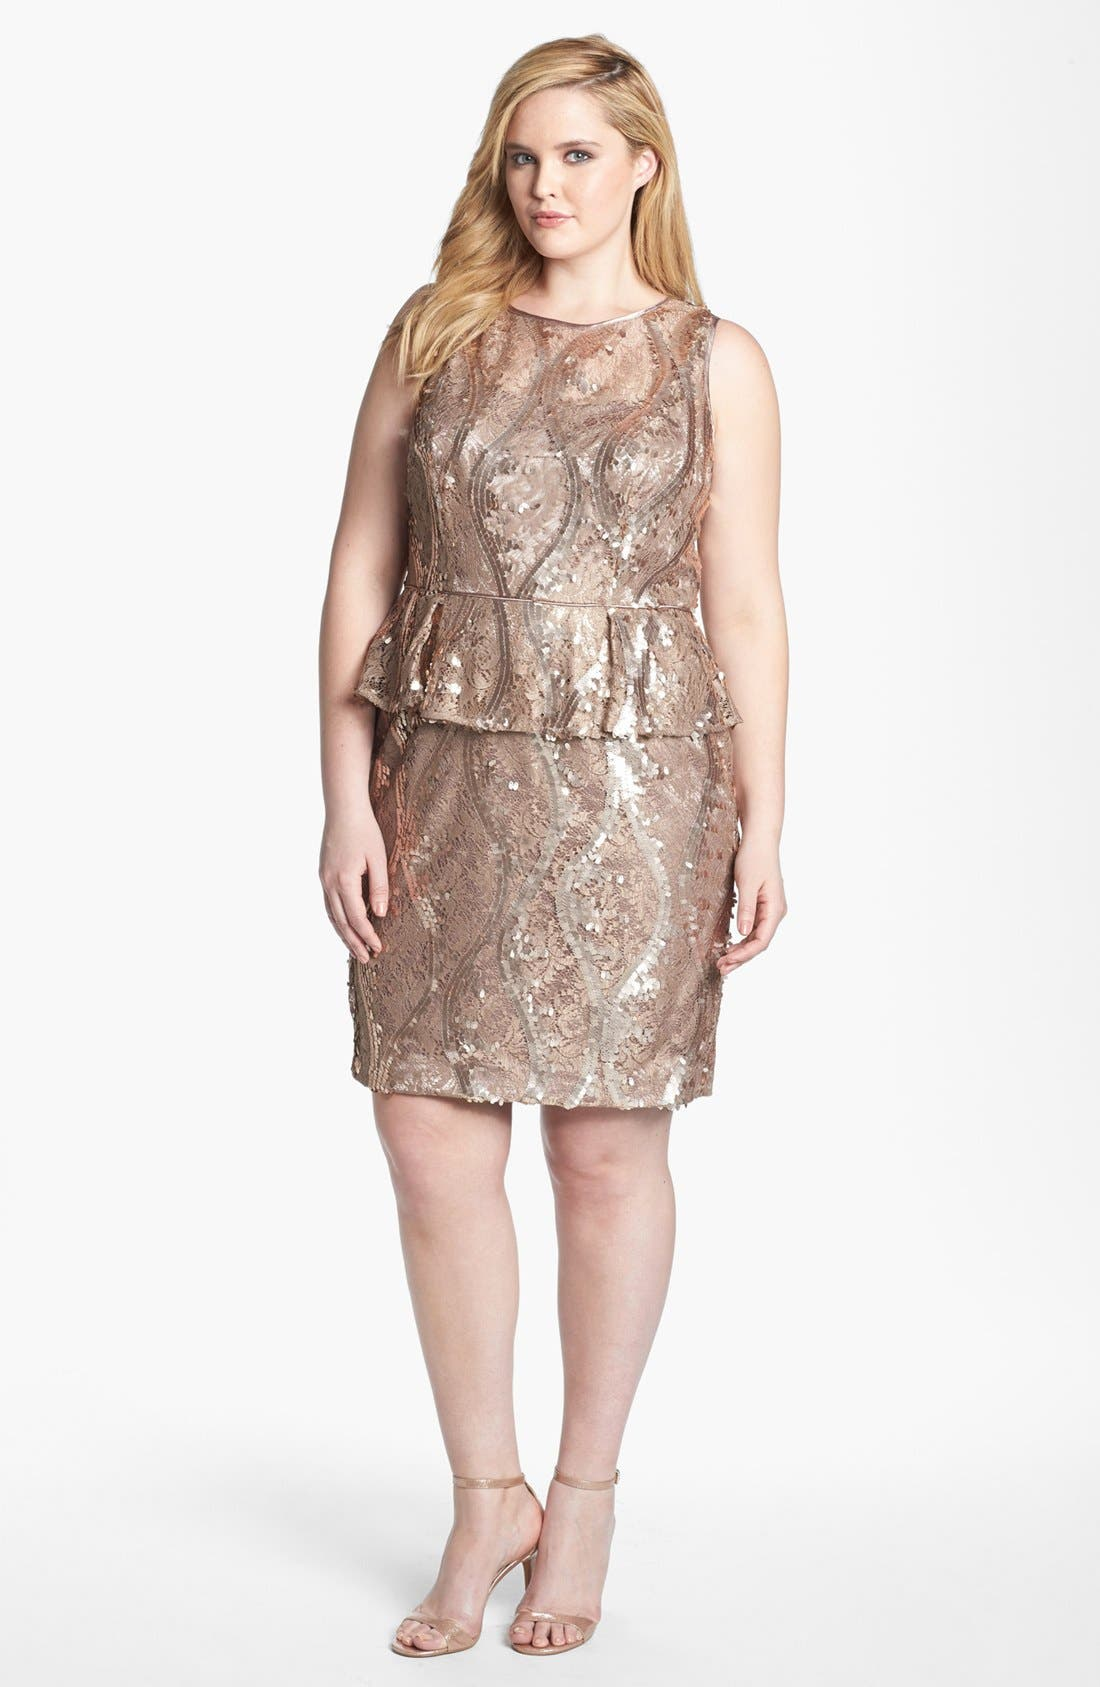 Alternate Image 1 Selected - Adrianna Papell Sequin & Lace Peplum Dress (Plus Size)